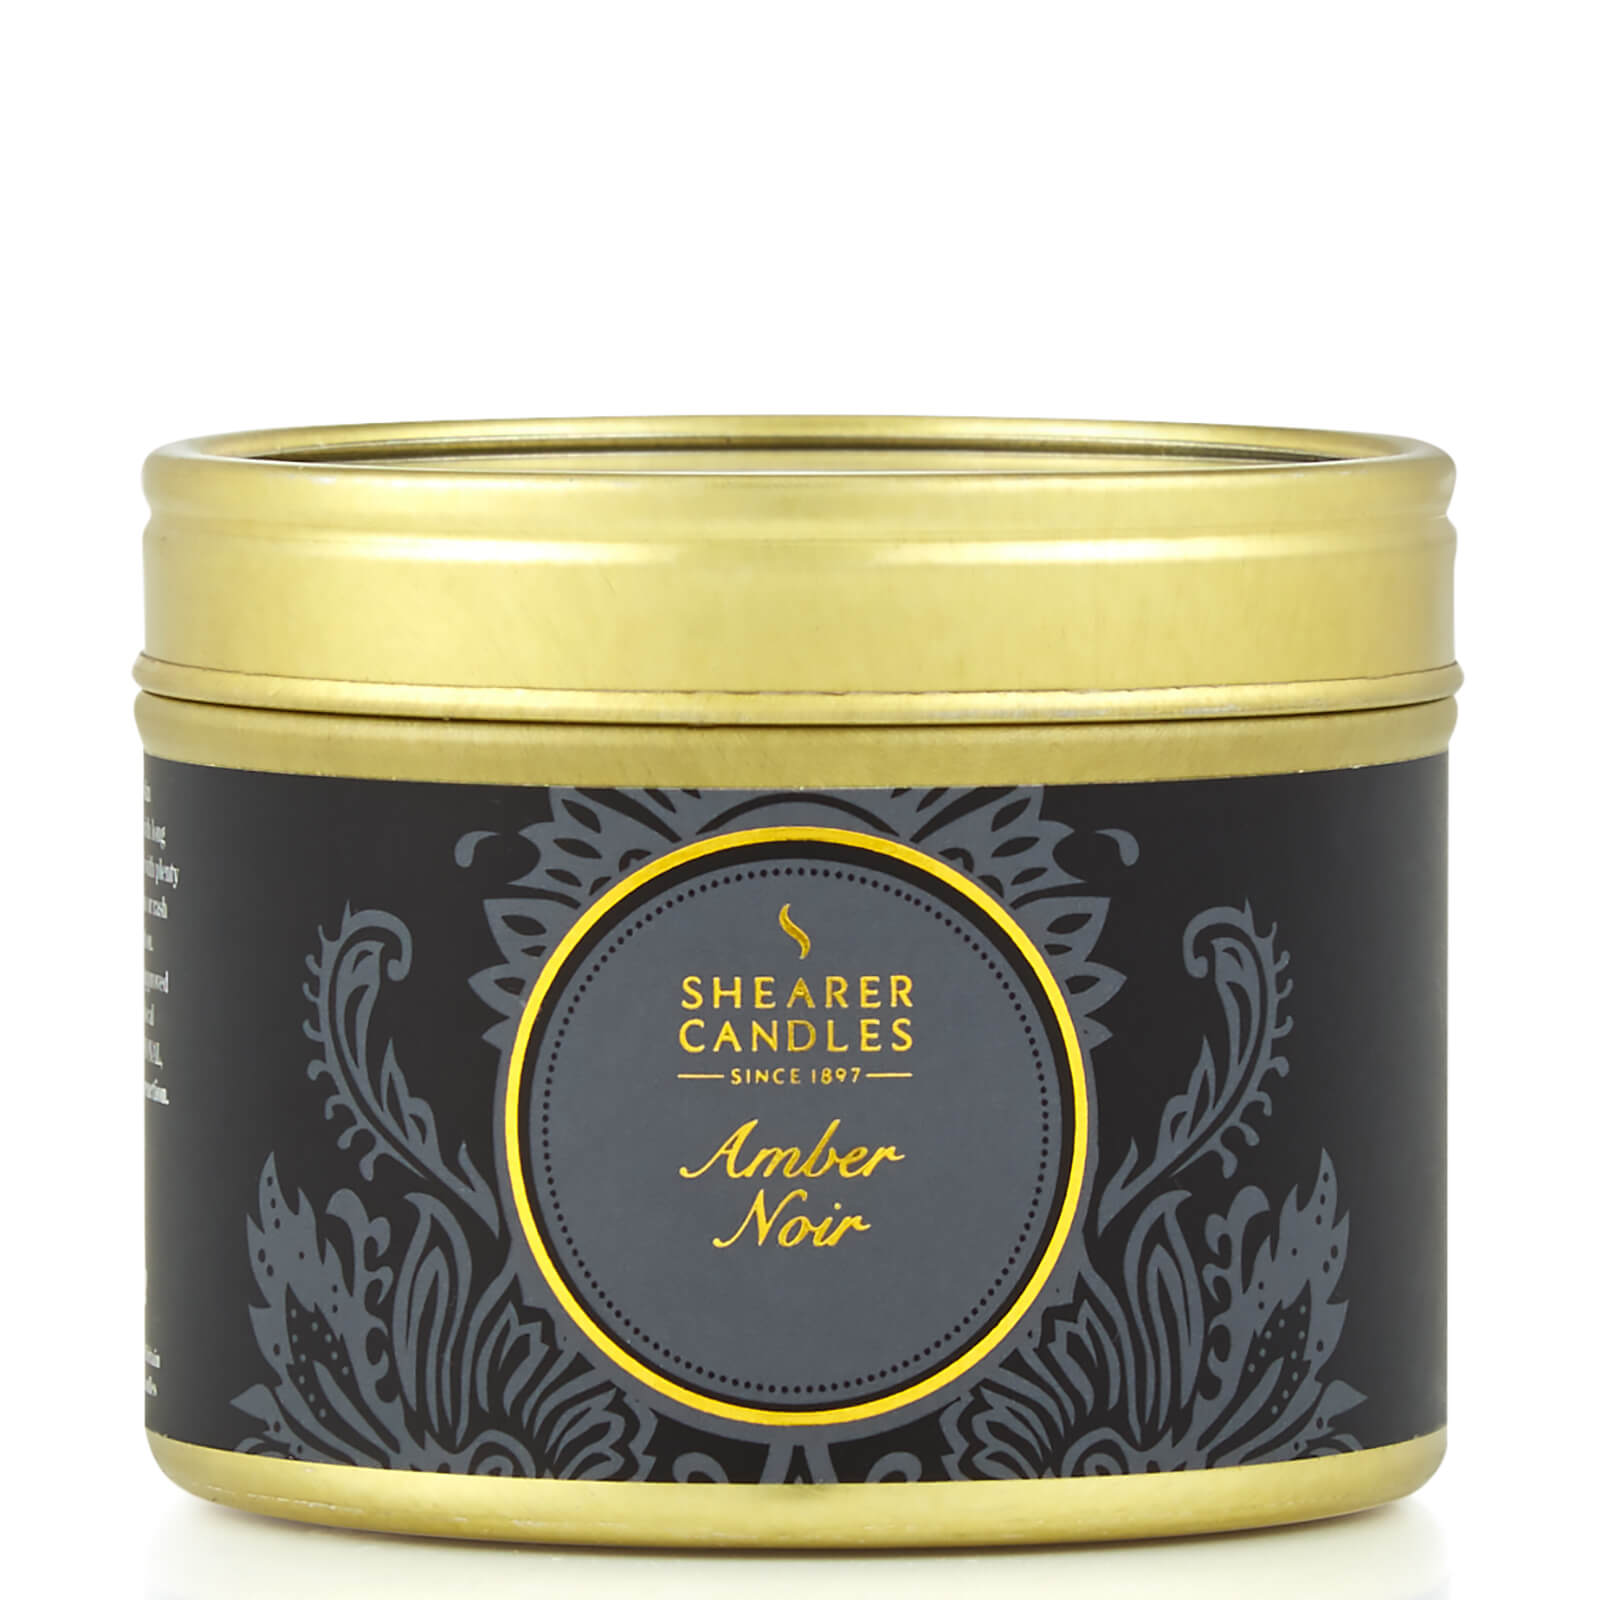 Luxury Small Tin Candle - Amber Noir